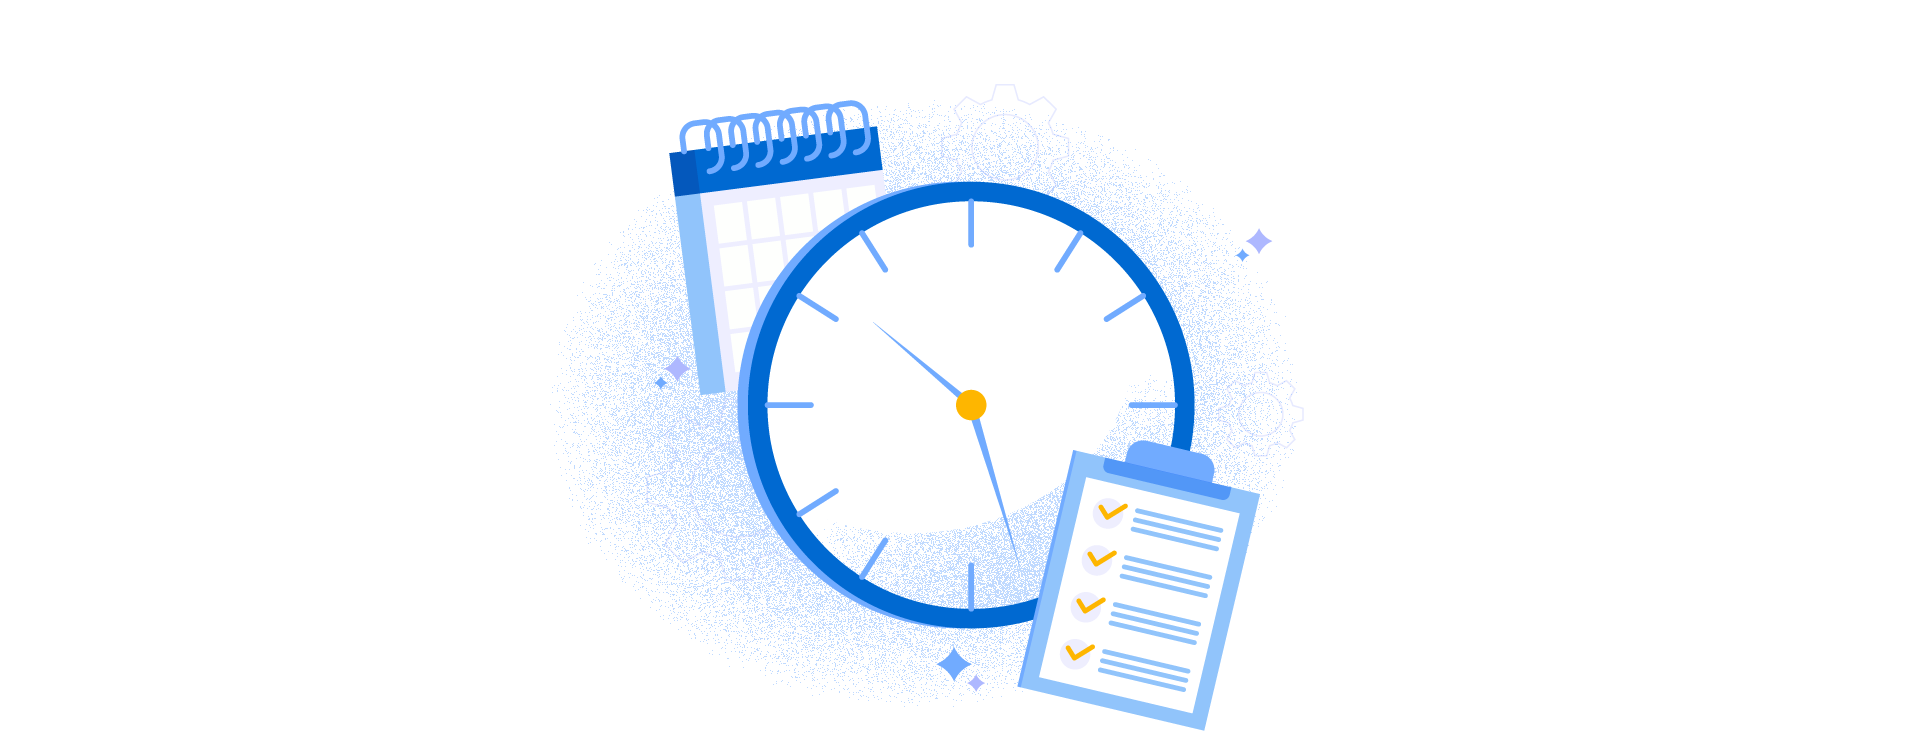 Make a schedule for work and plan when you will take breaks. Sticking to a daily schedule for work will make sure you complete your tasks within office hours. This way, you won't allow your job to take over personal time. You will become more disciplined, leading to higher efficiency and productivity. You will also have the time to enjoy family time.